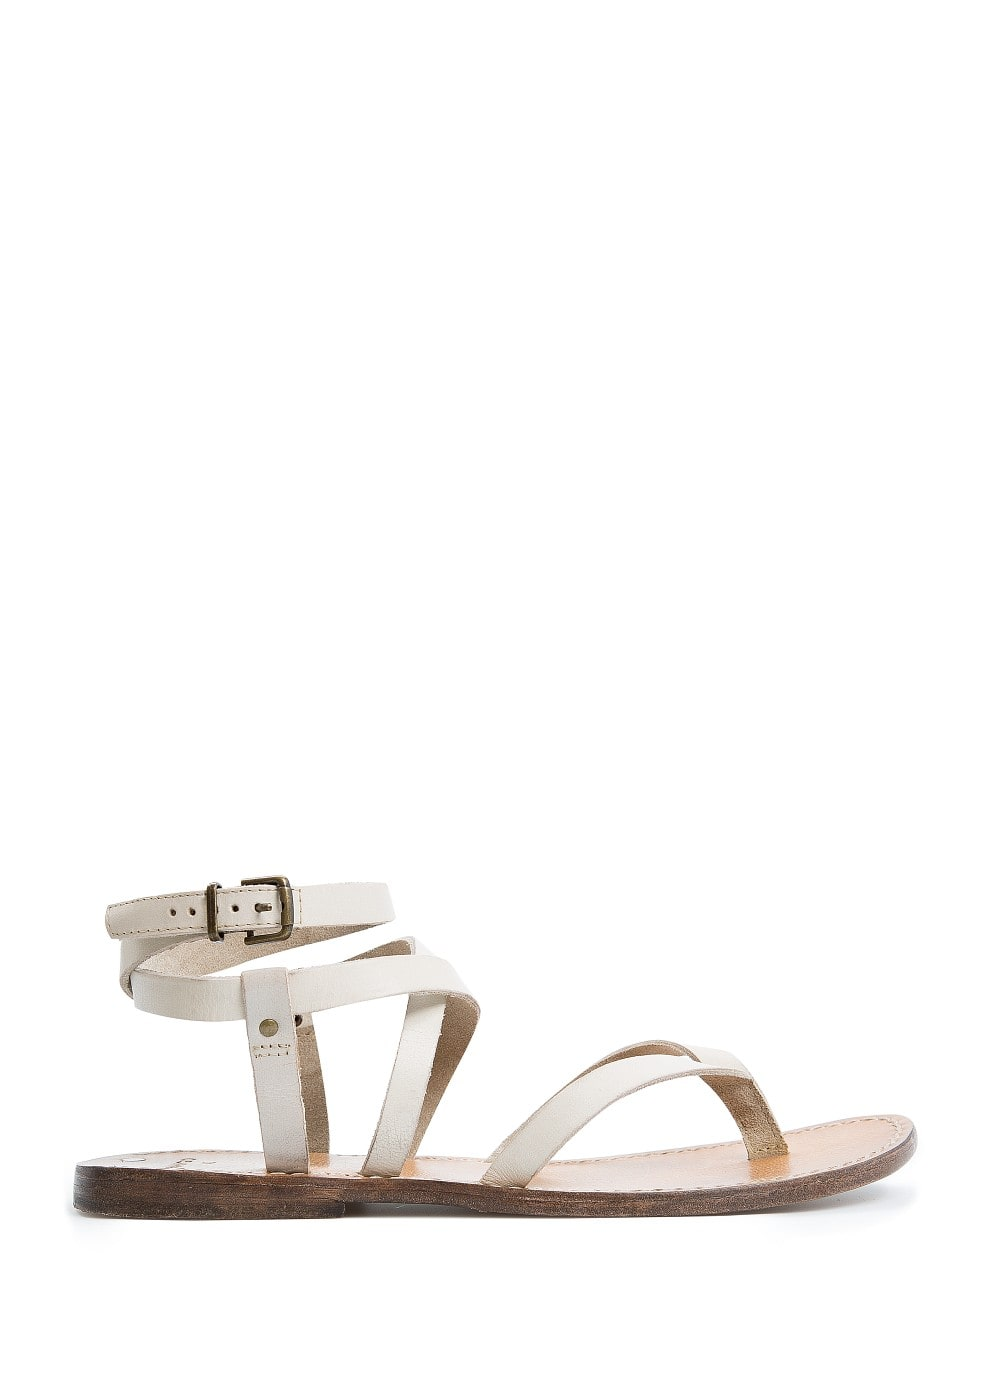 Leather multi-strap sandals